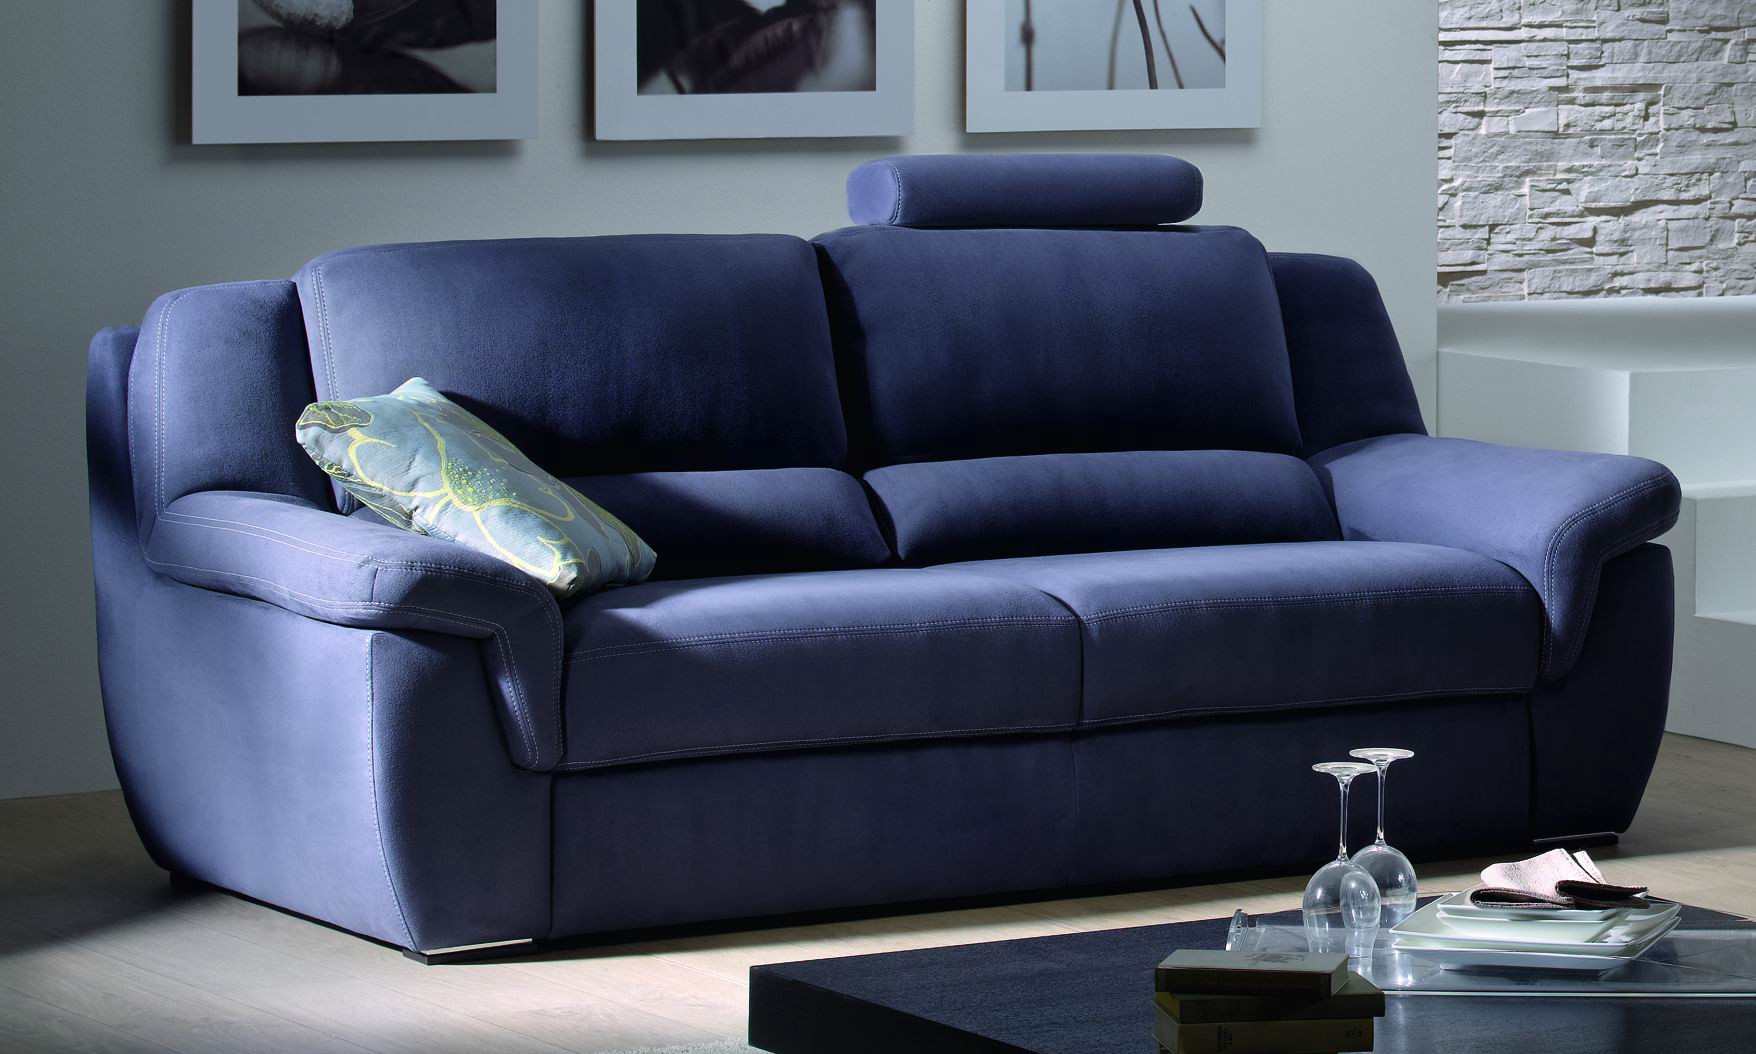 The Best Sofa Brands to Buy - anN Gee - Medium